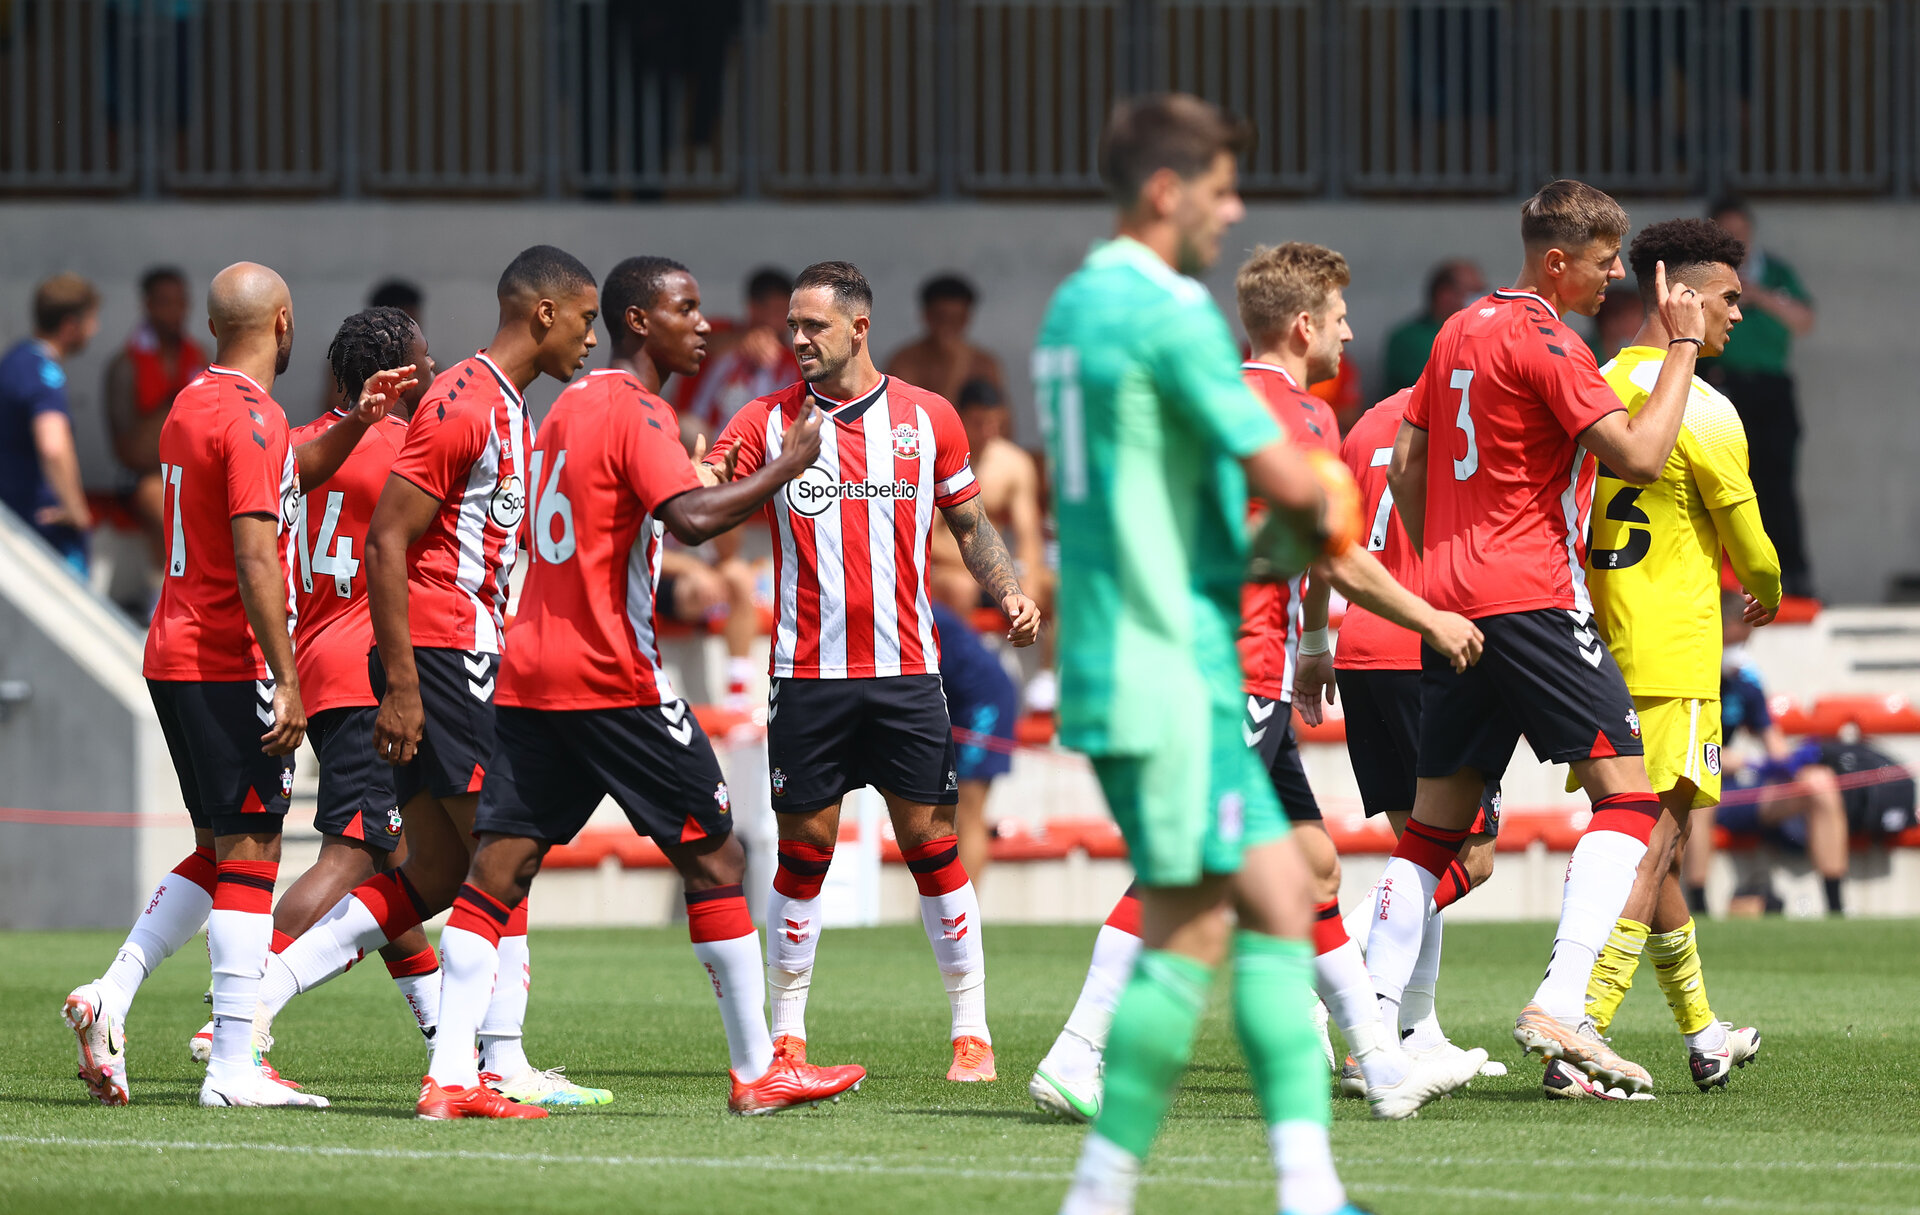 SOUTHAMPTON, ENGLAND - JULY 24: Southampton players gather after Shane Long opens the scoring during a pre-season friendly match between Southampton FC and Fulham at The Staplewood Campus on July 24, 2021 in Southampton, England. Photo by Matt Watson/Southampton FC via Getty Images